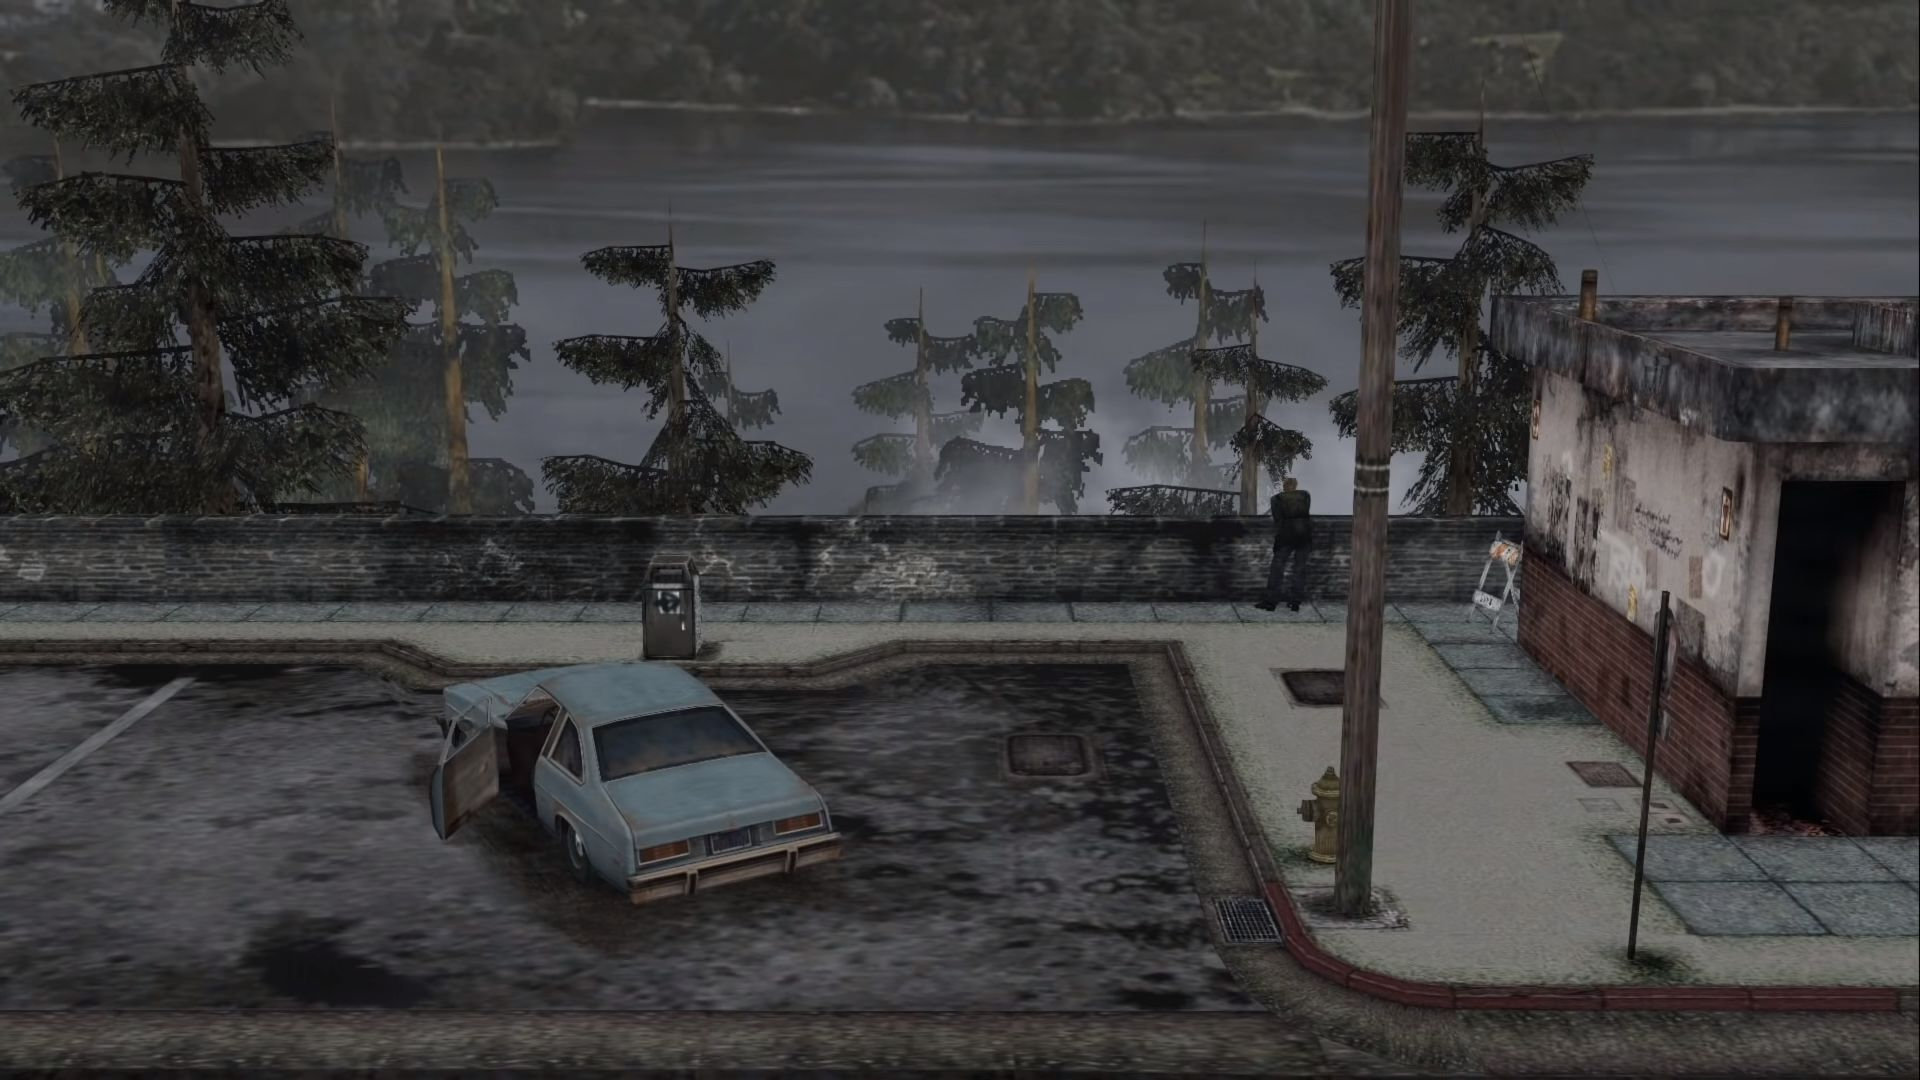 Updated Silent Hill 2 fan patch upscales images, improves audio, fixes bugs, and more